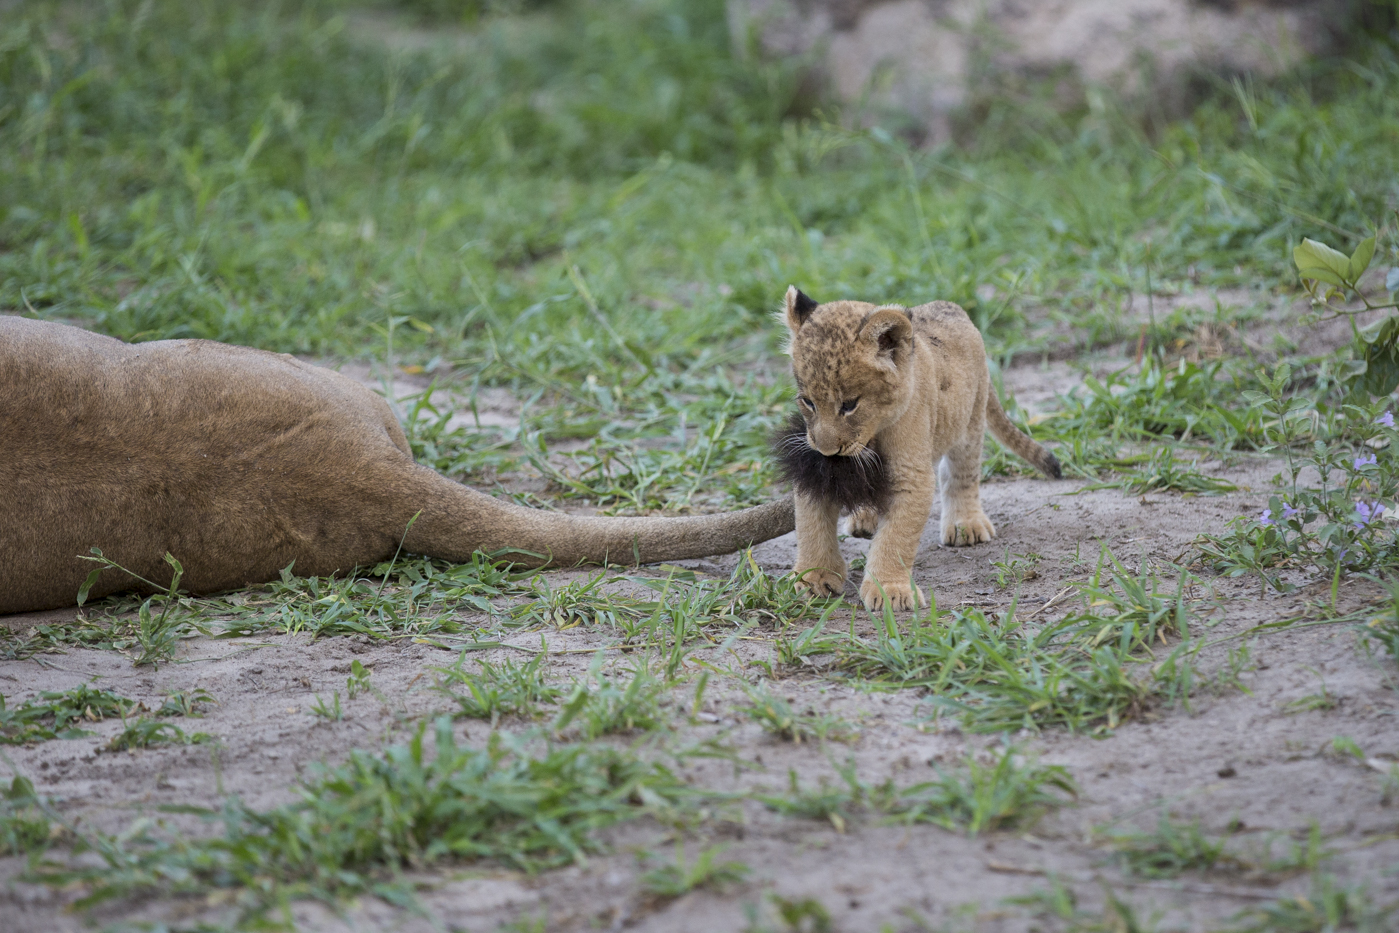 Lion Cub plays with tail